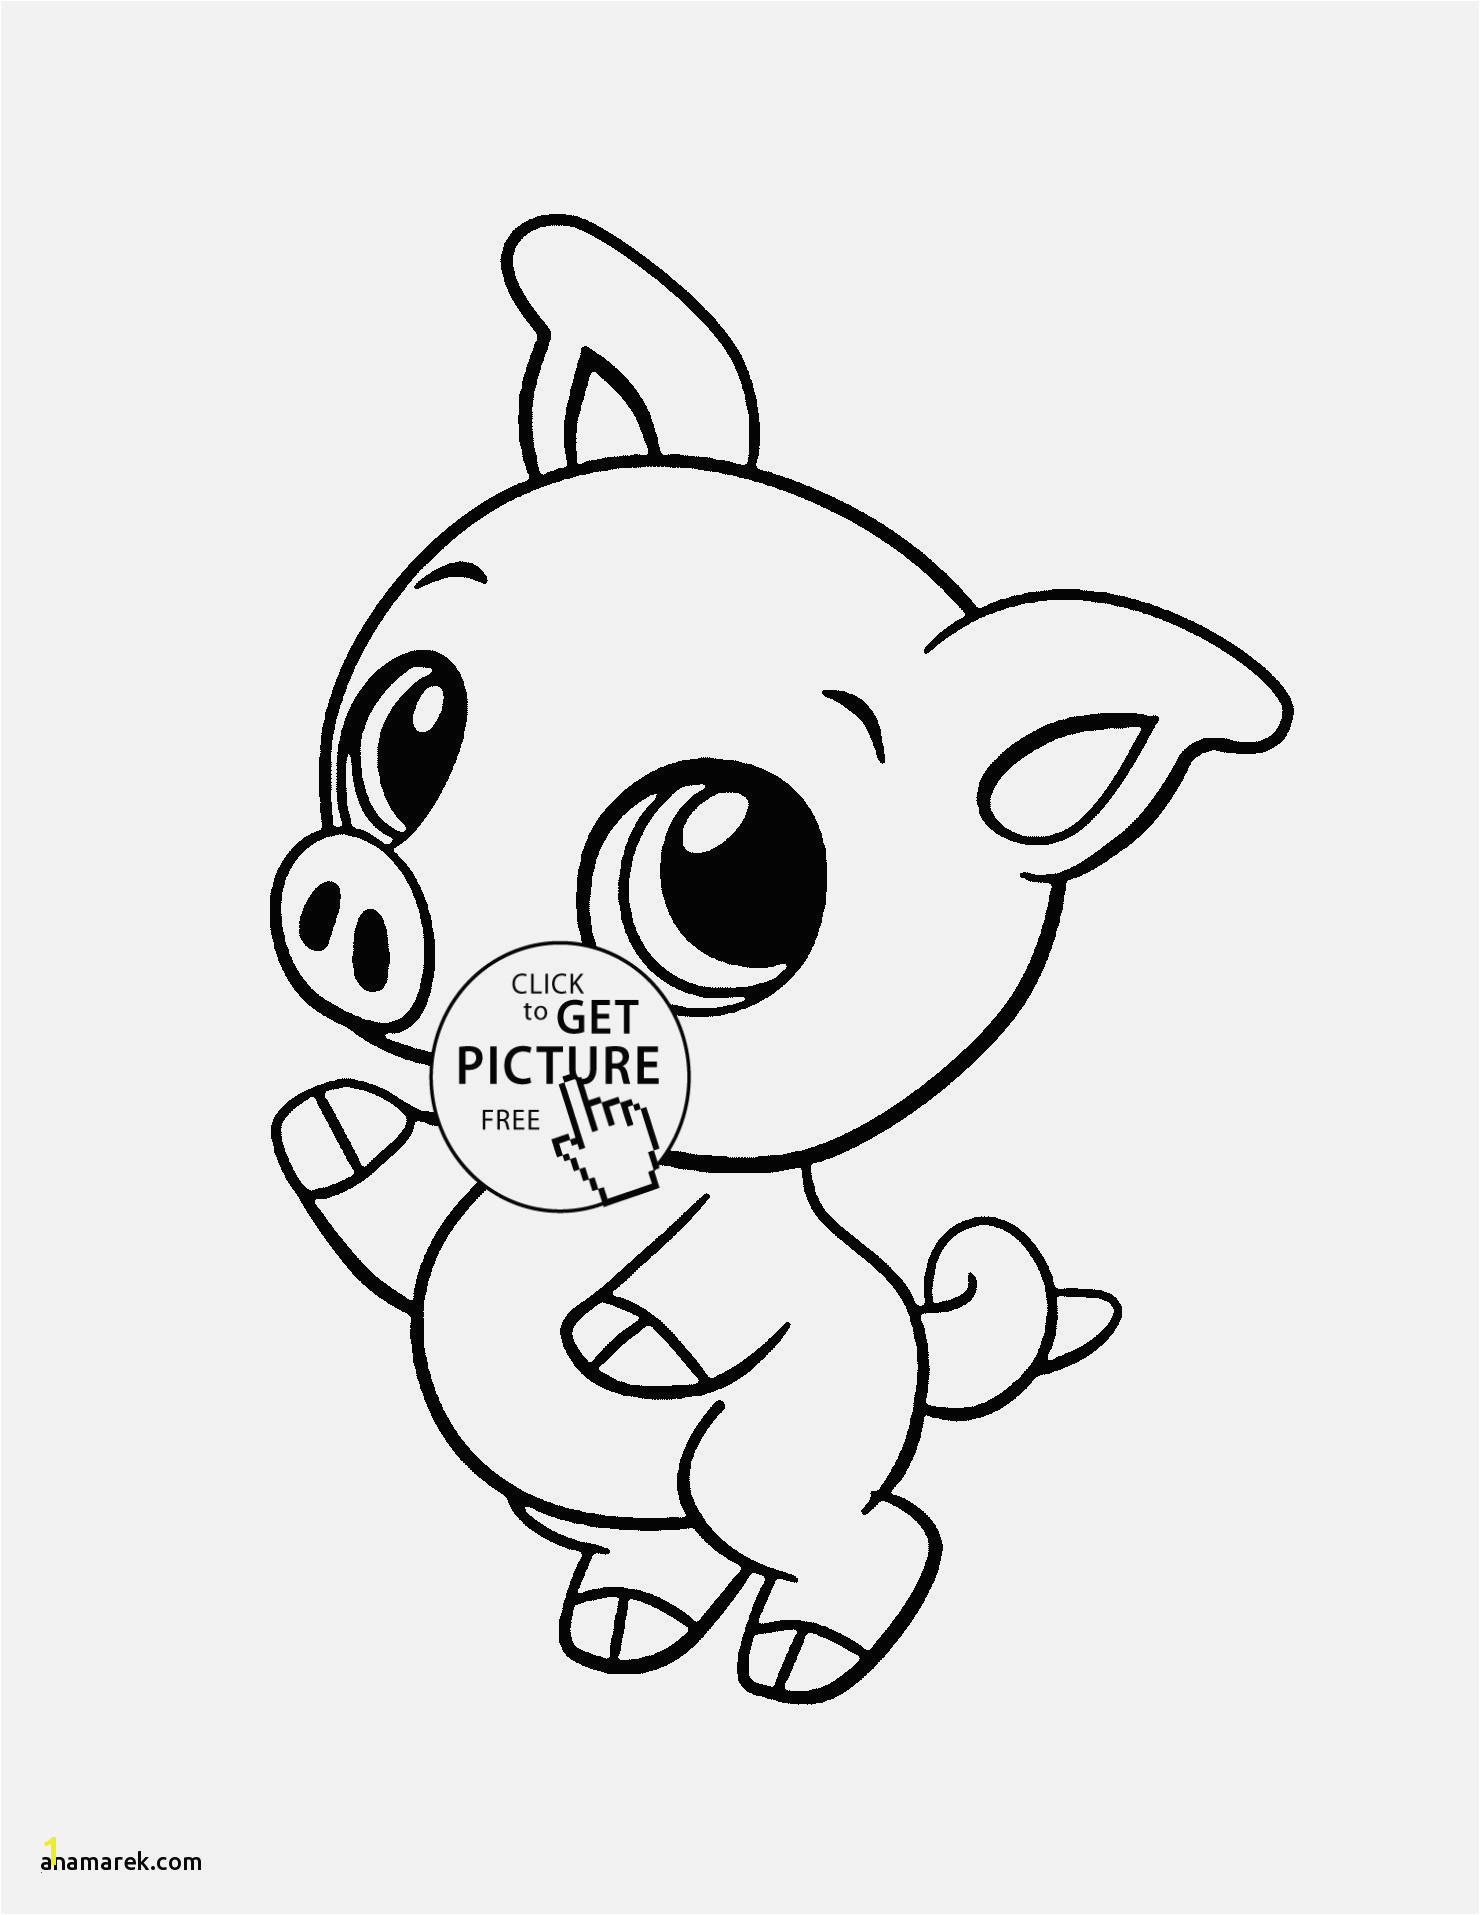 Baby Animal Coloring Pages Easy and Fun Animals Coloring Page 21csb Baby Animal Coloring Pages